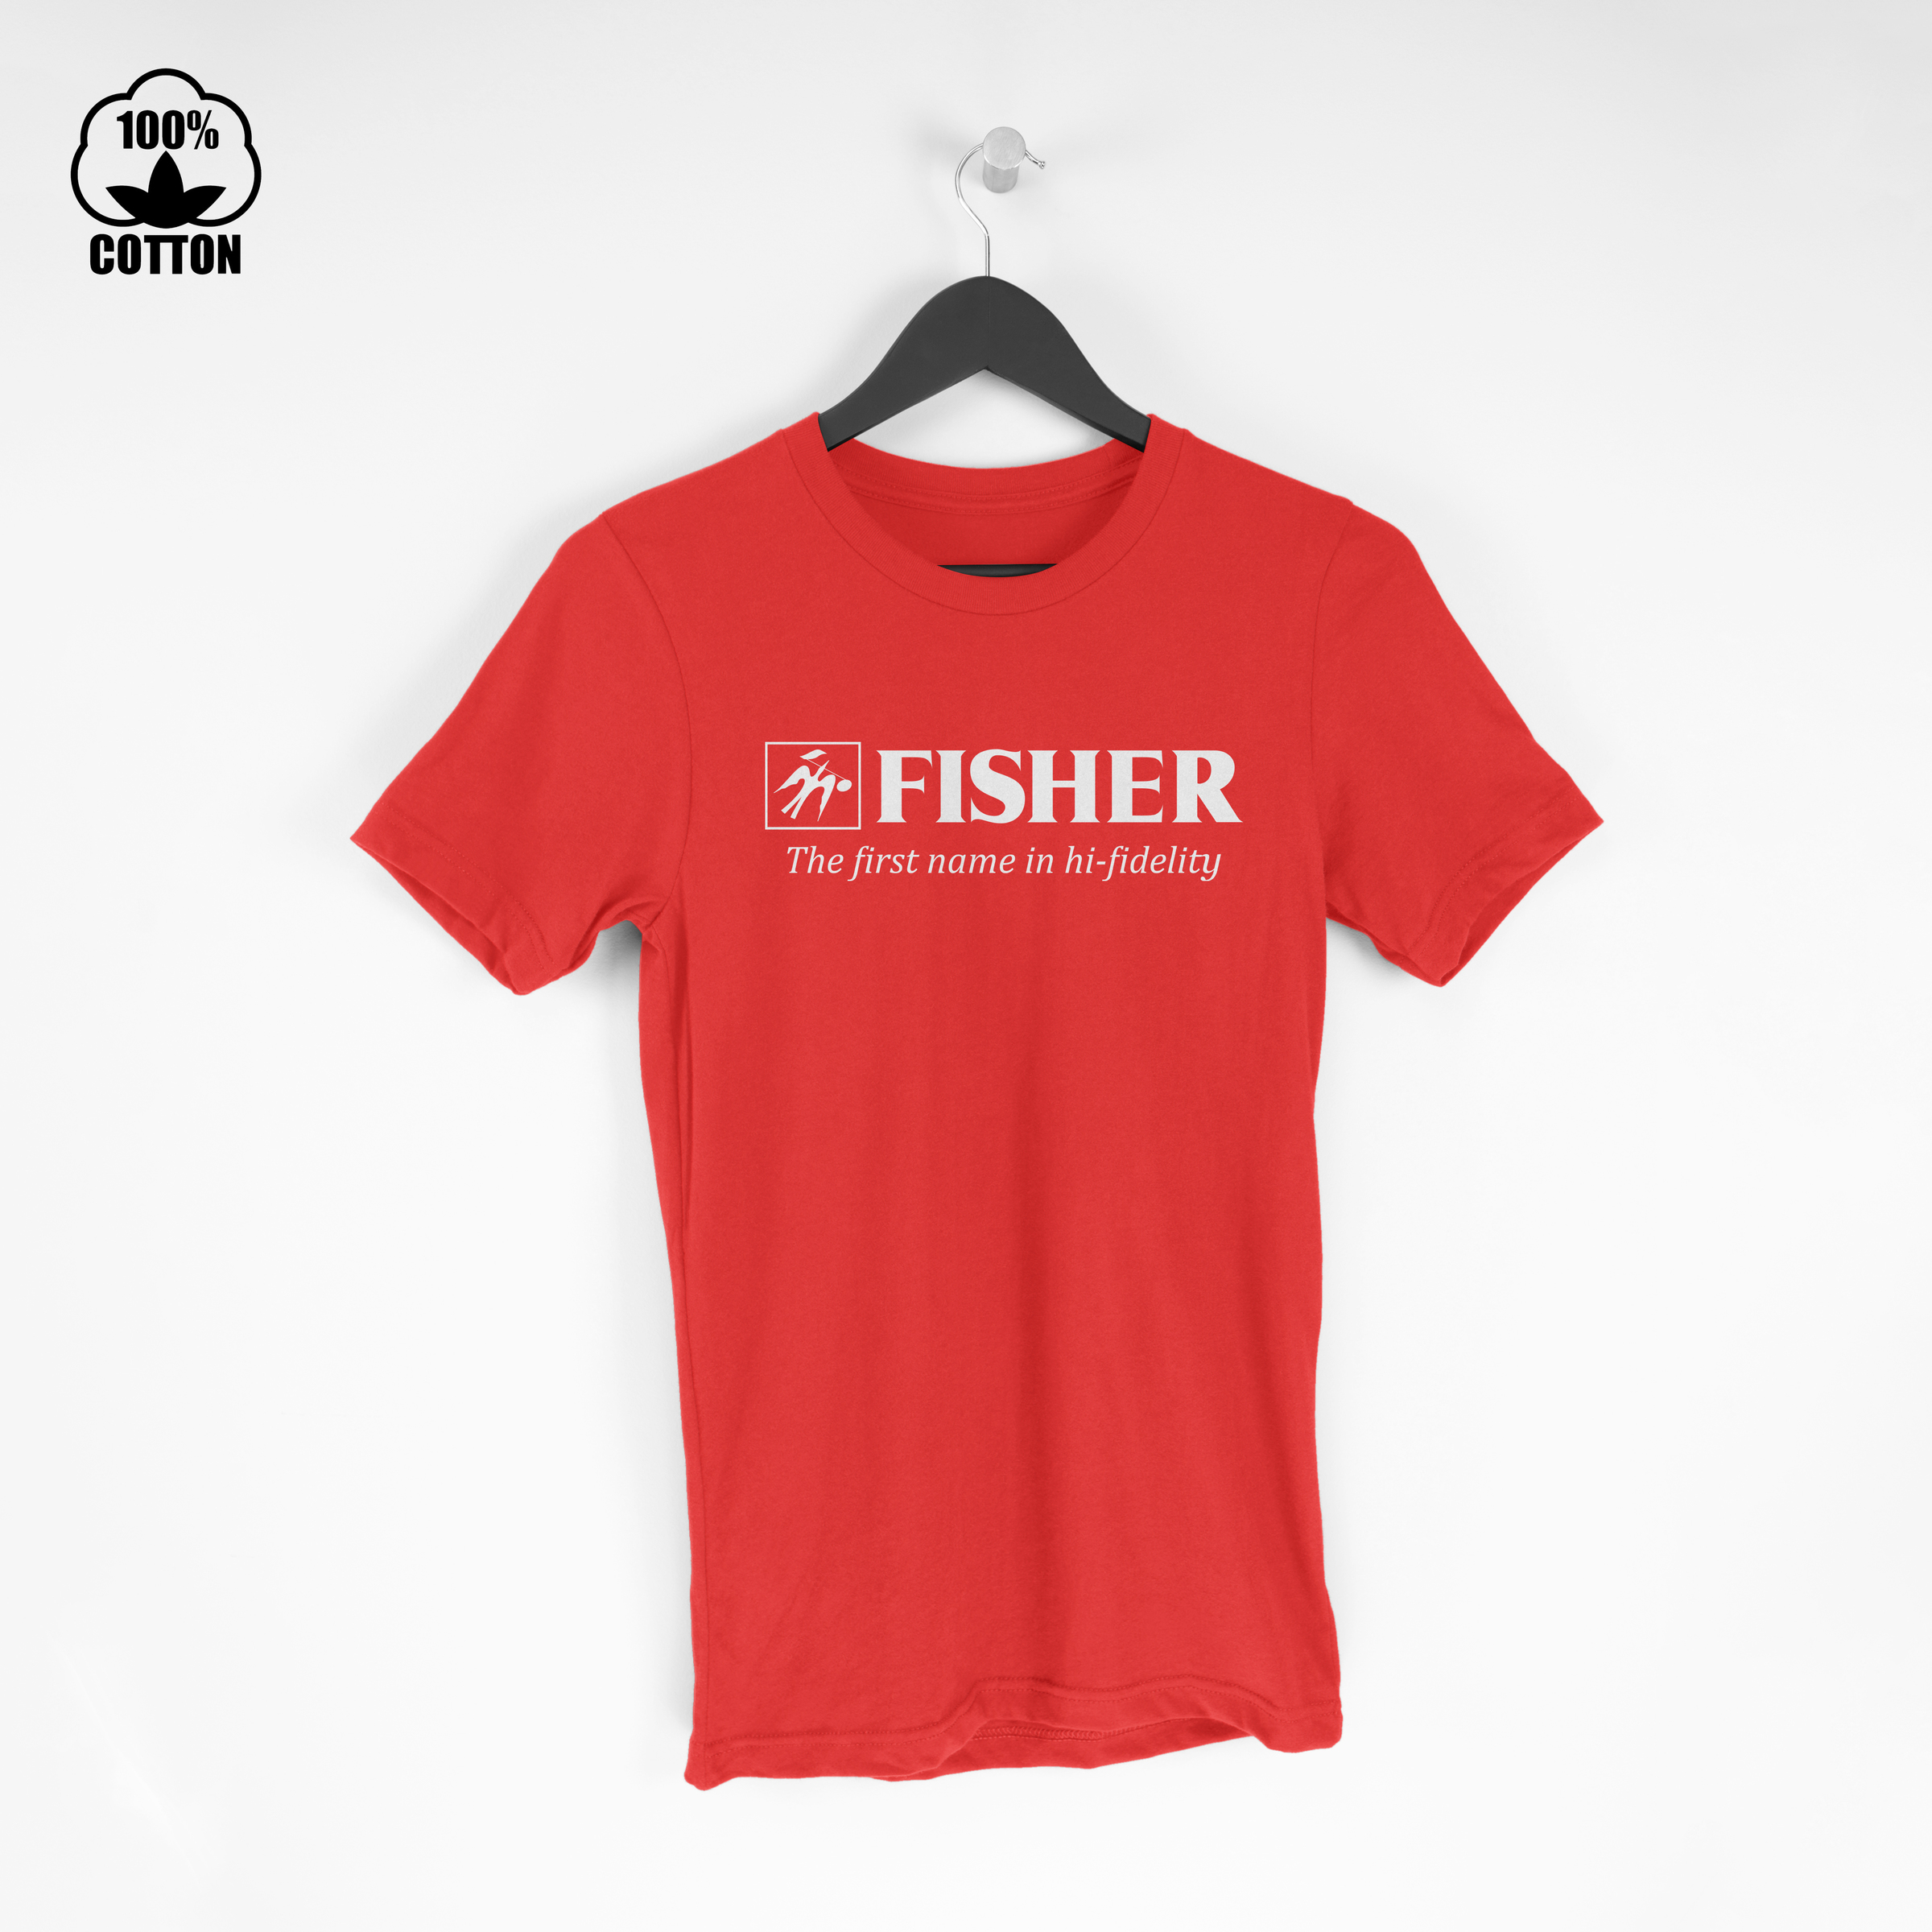 Fisher Logo Electronics Audio Stereo Components Hi-Fi Amplifier Tuner  Tshirt Size M-XXL USA Crimson.jpg